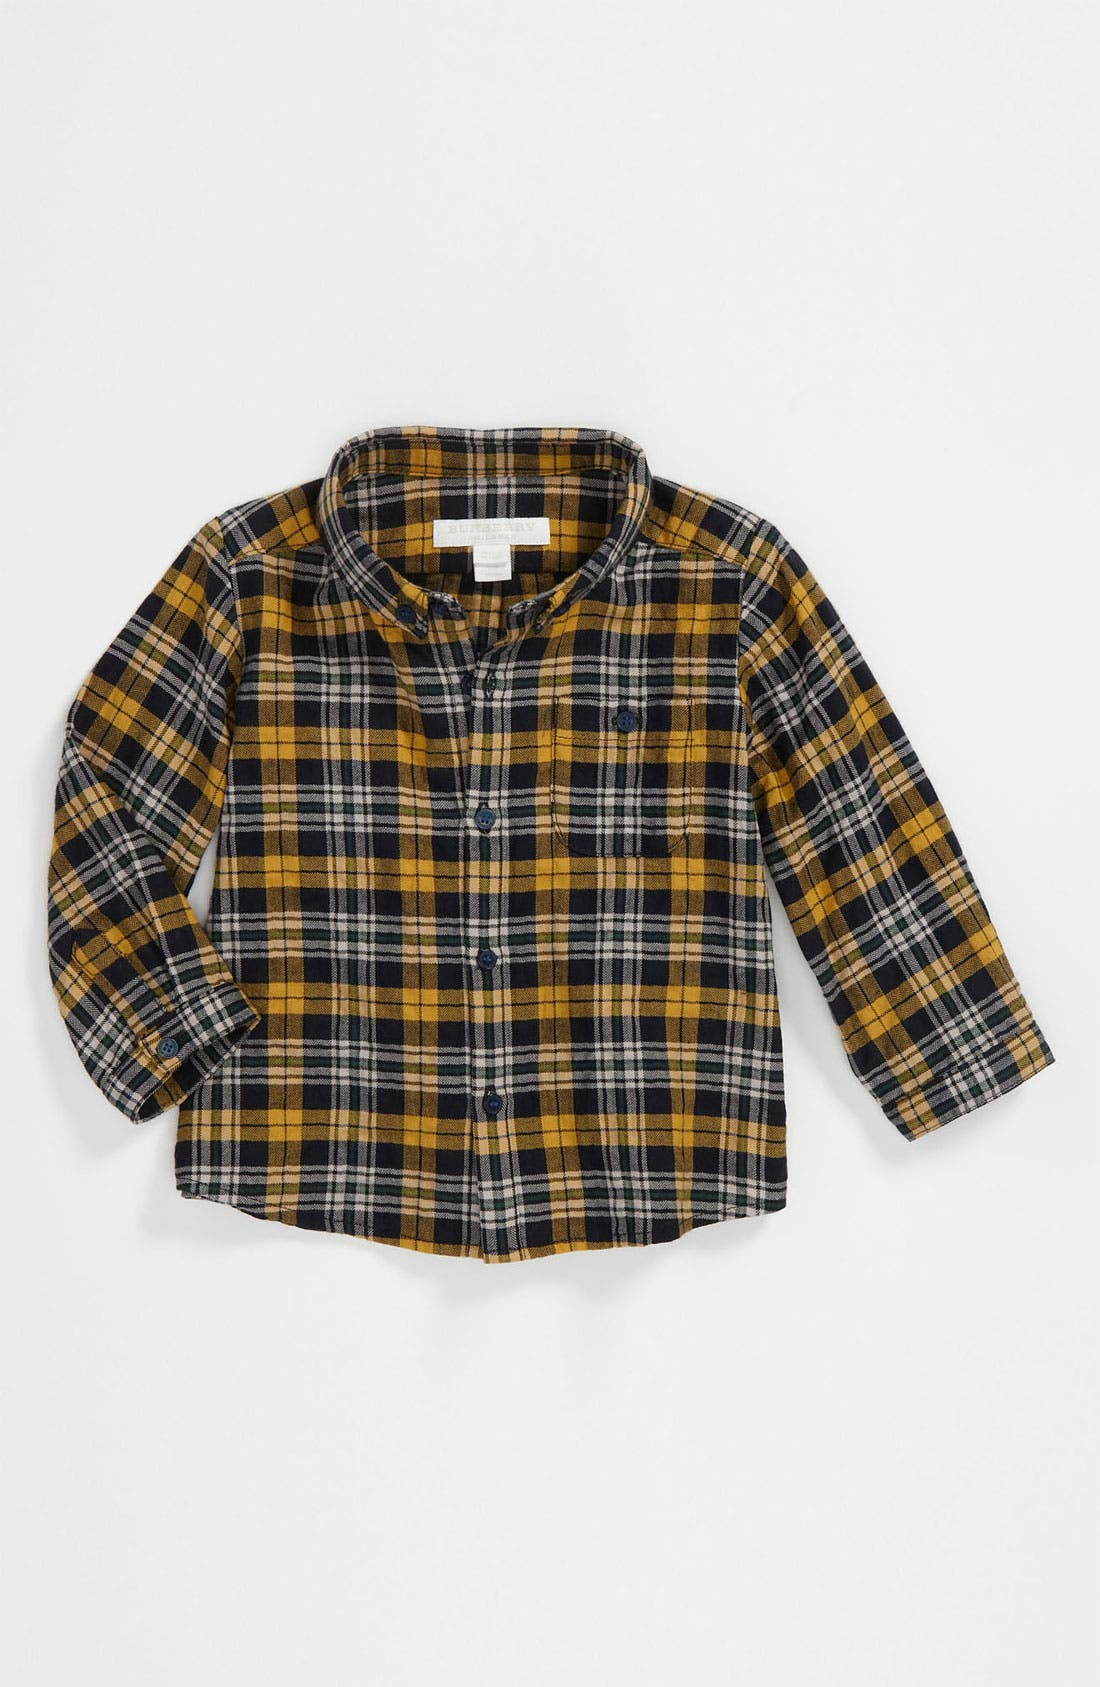 Alternate Image 1 Selected - Burberry Check Print Woven Shirt (Infant)